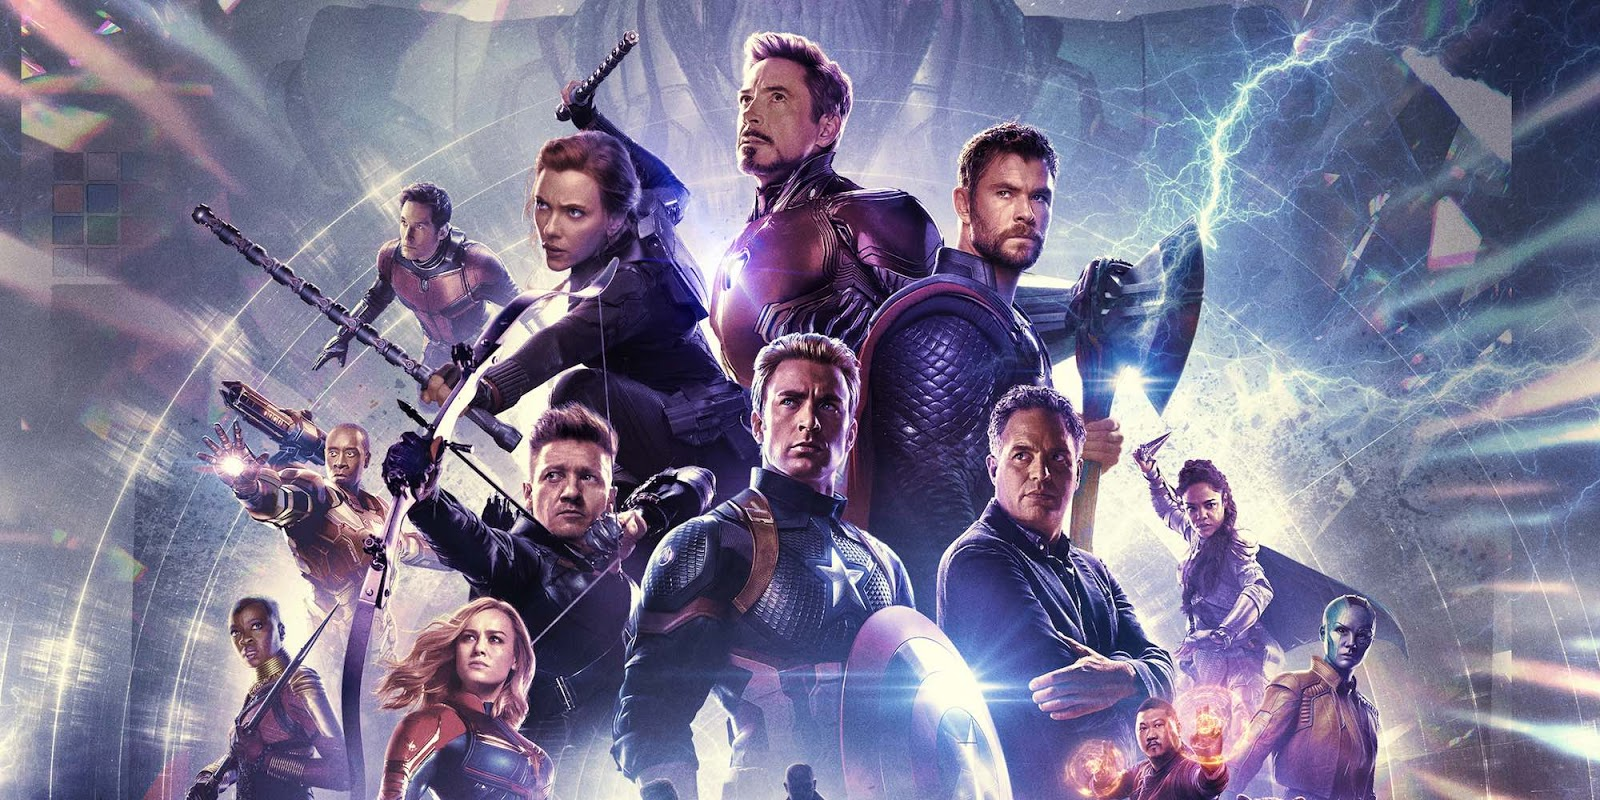 'Avengers: Endgame' NO SPOILERS Movie Review